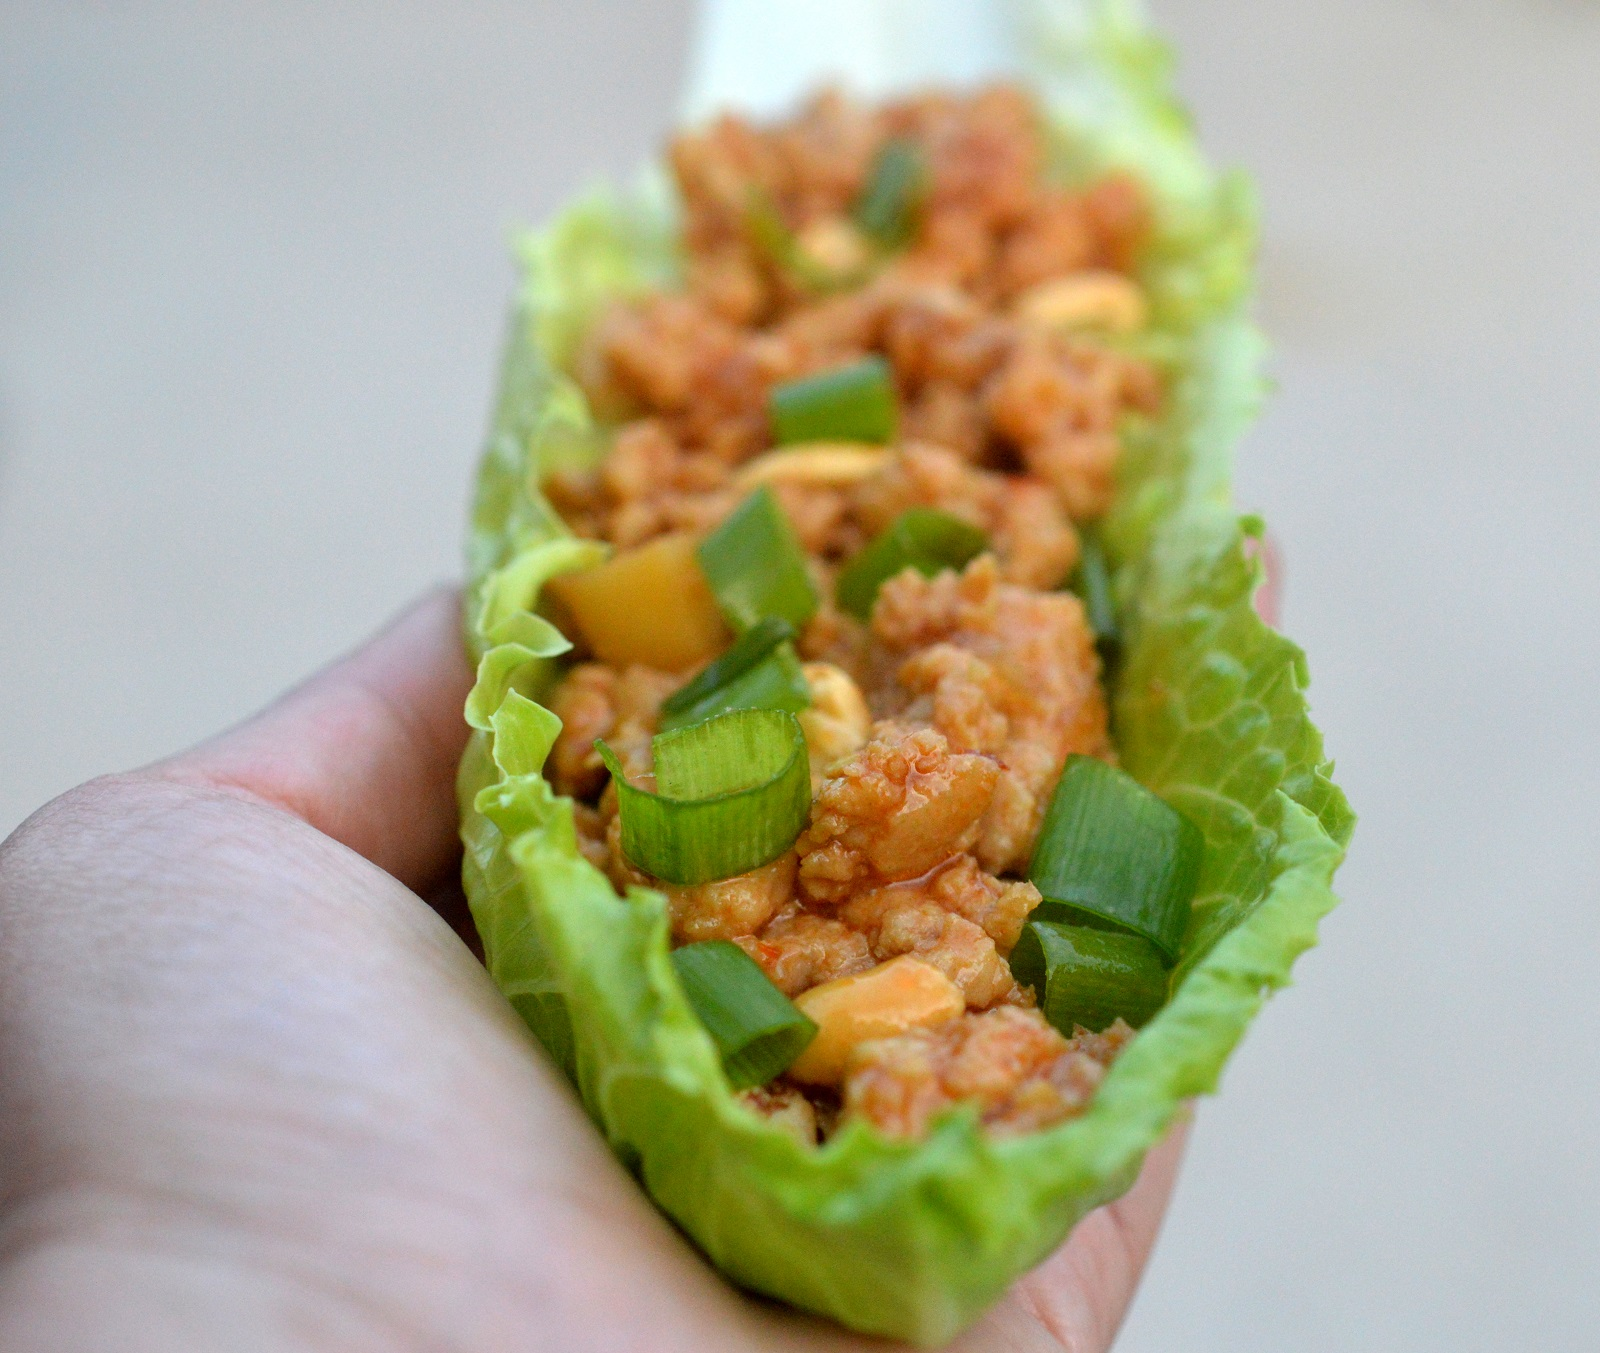 How To Make Lettuce Wraps